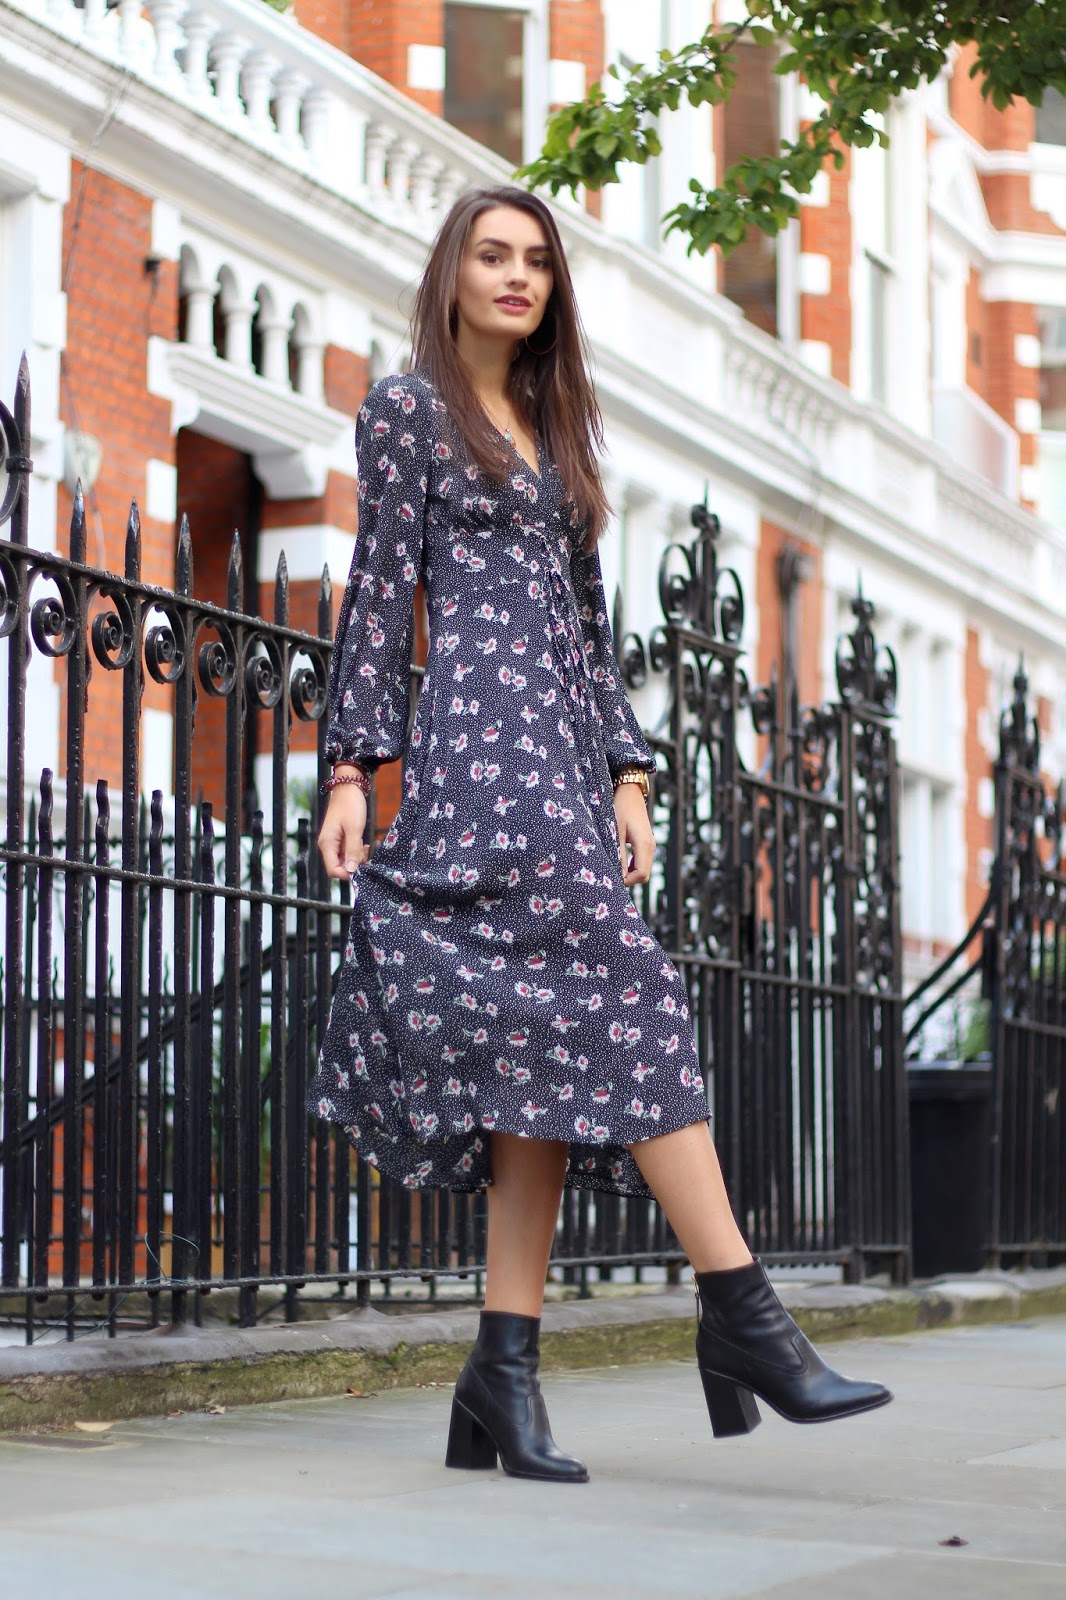 peexo style blogger transitional style